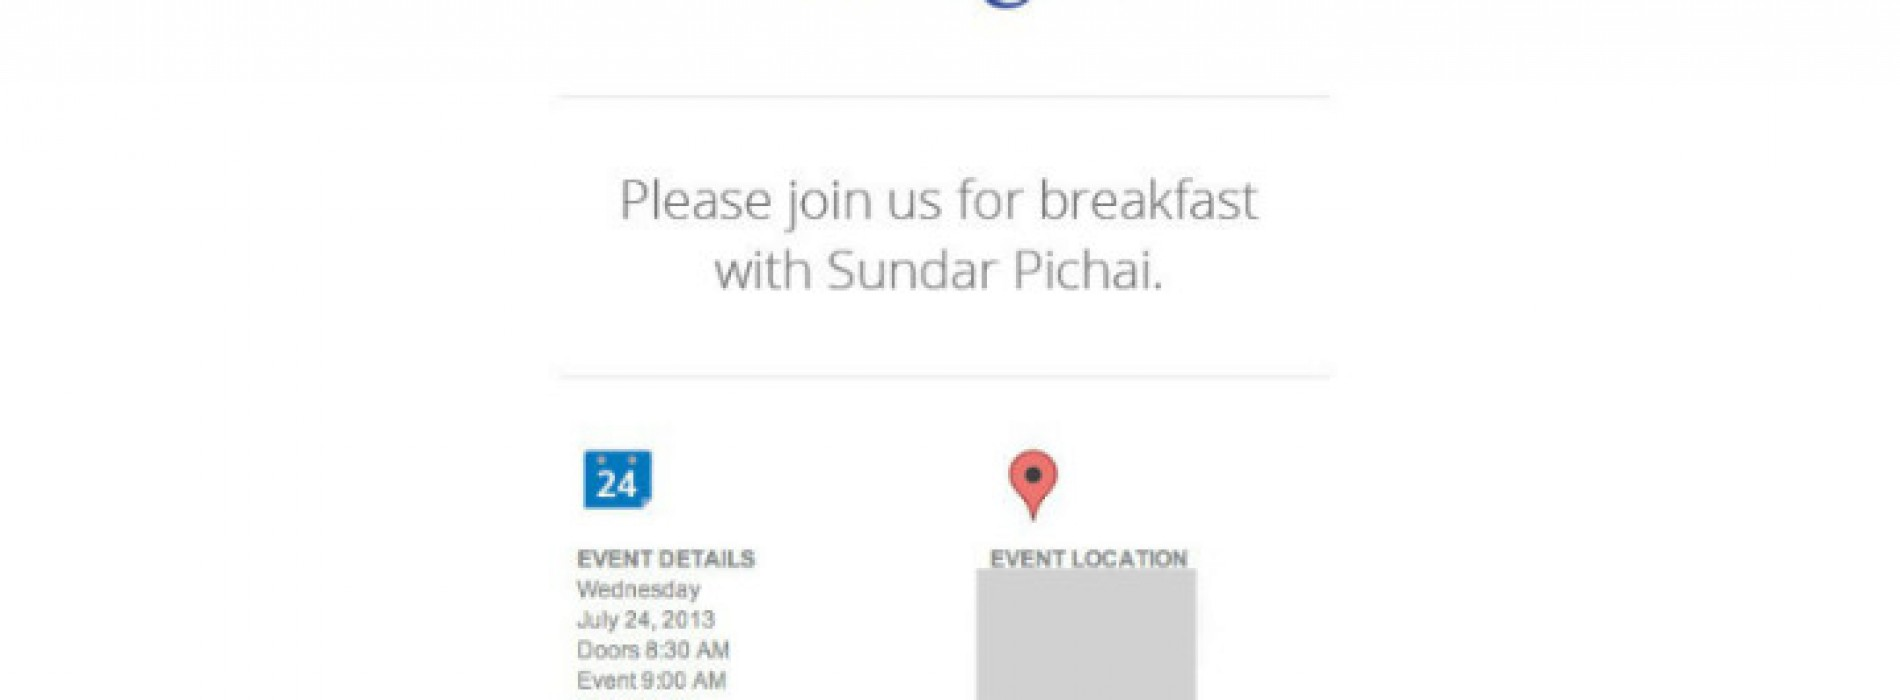 Google schedules Android-related event for July 24